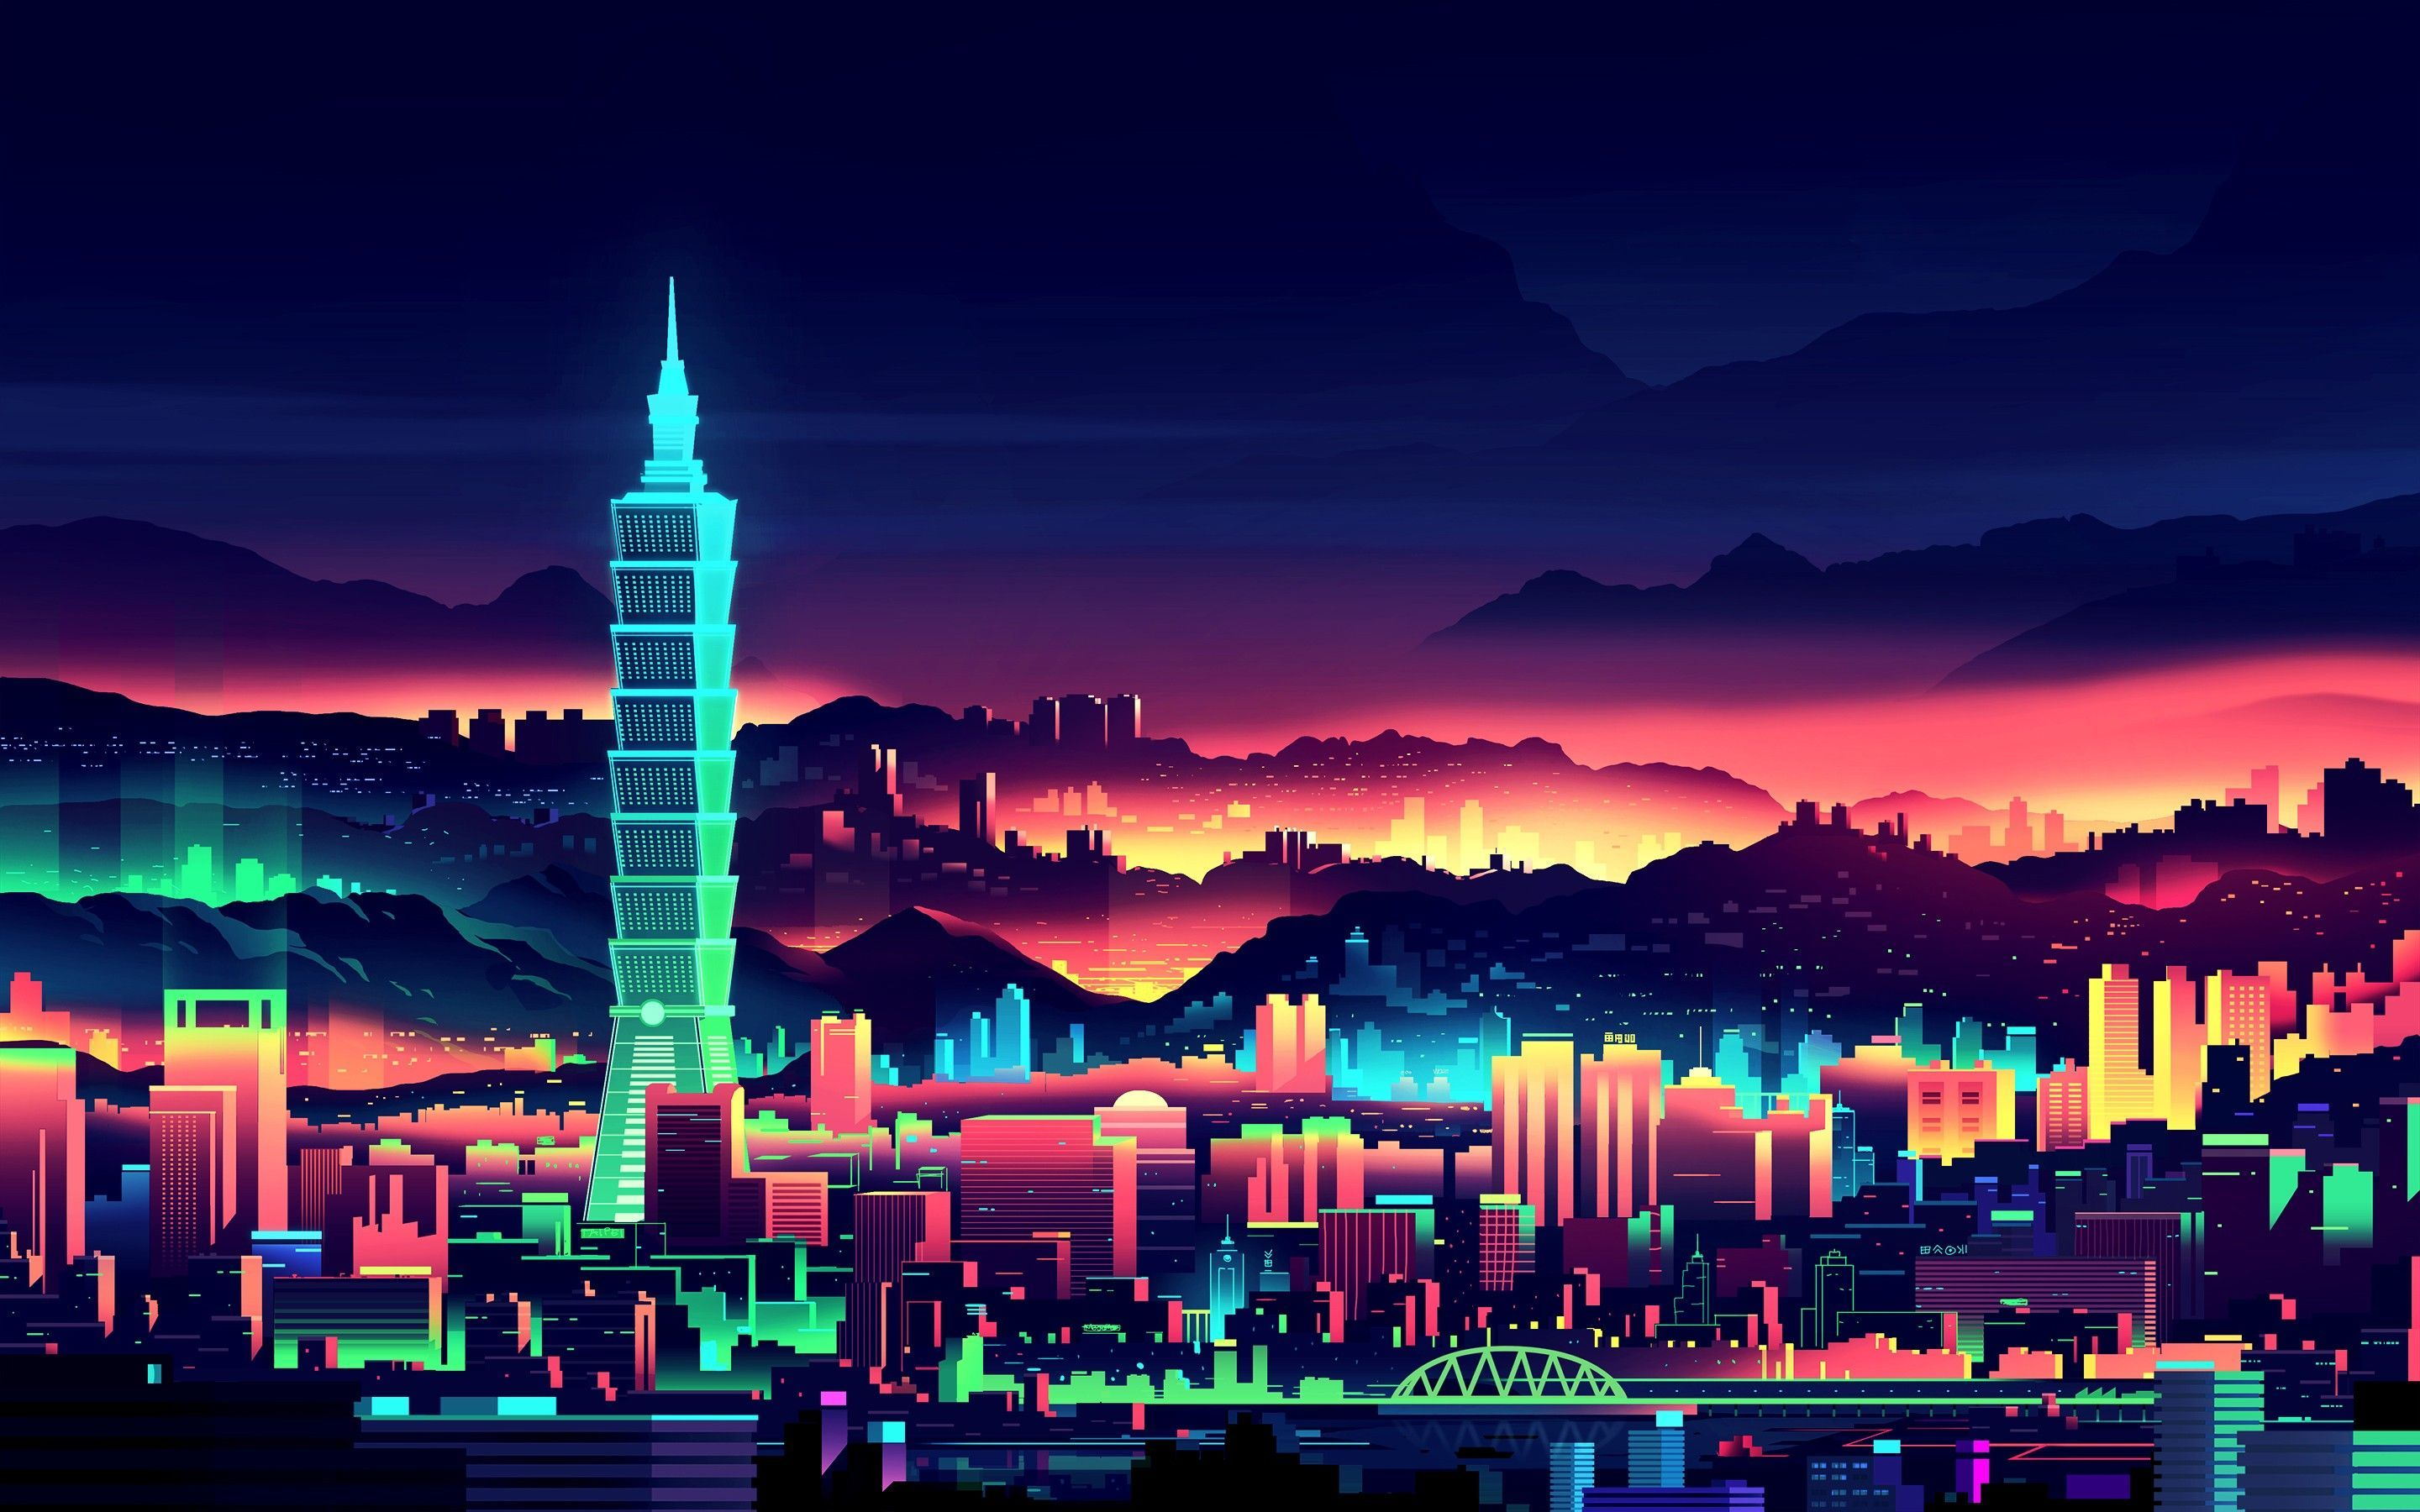 City Drawing Wallpapers Top Free City Drawing Backgrounds Wallpaperaccess